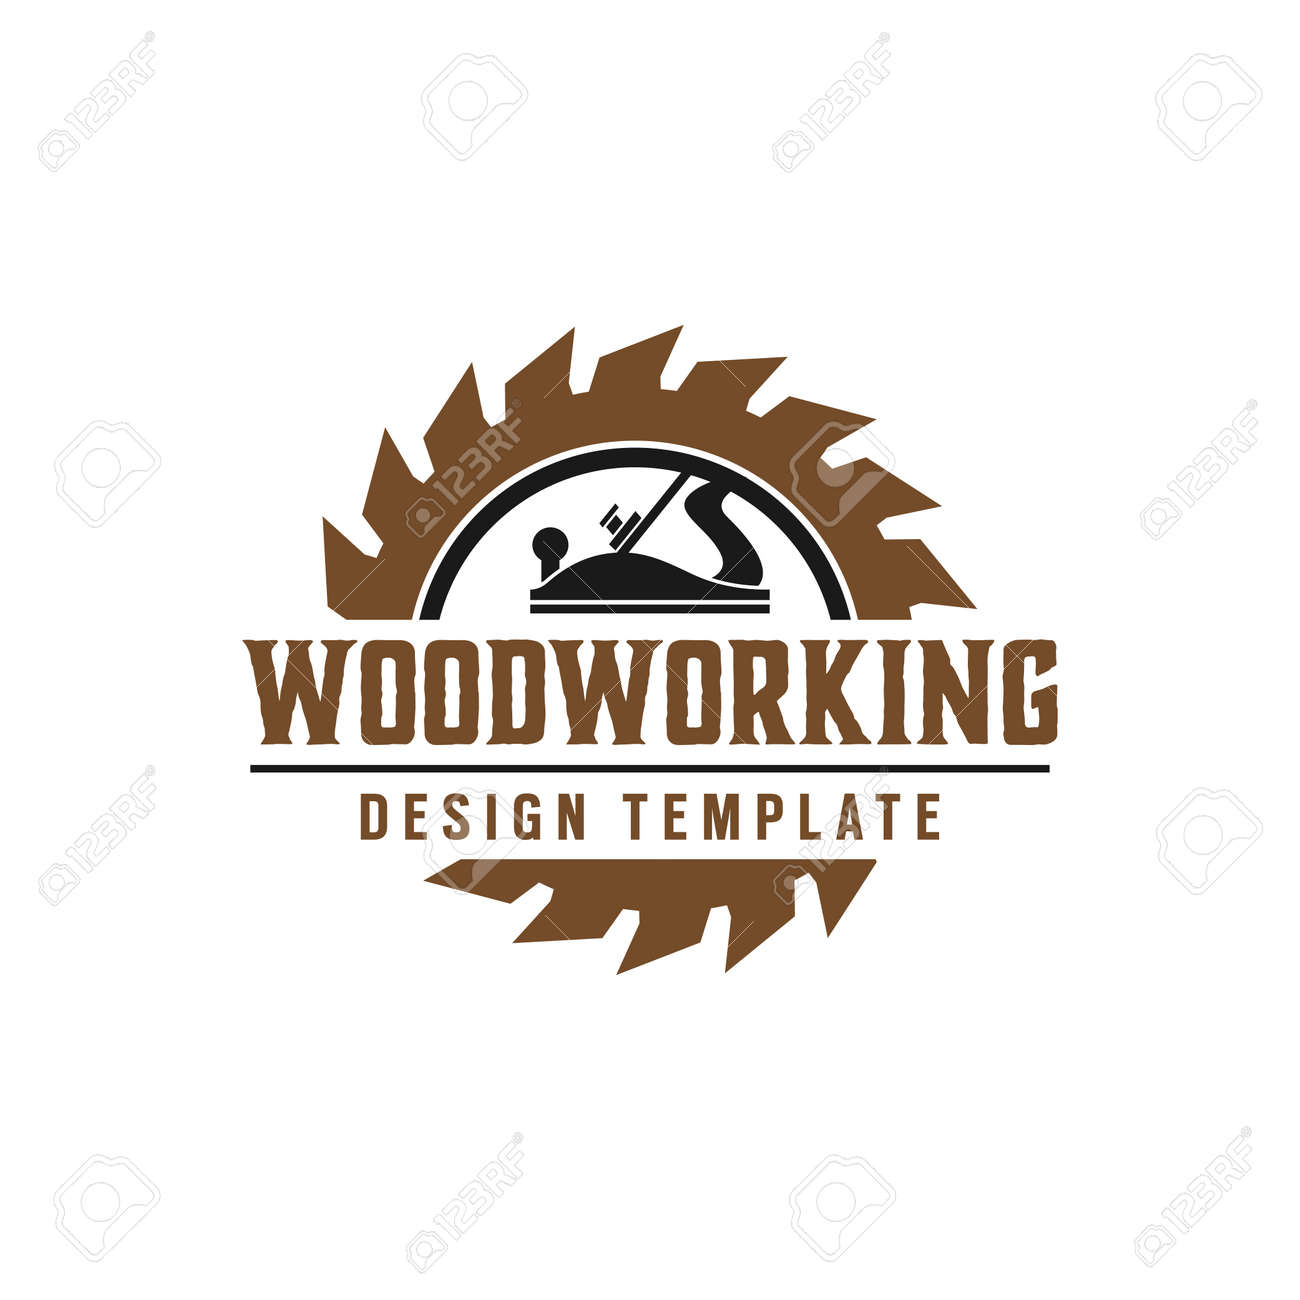 Woodworking Clip Art - Royalty Free - GoGraph